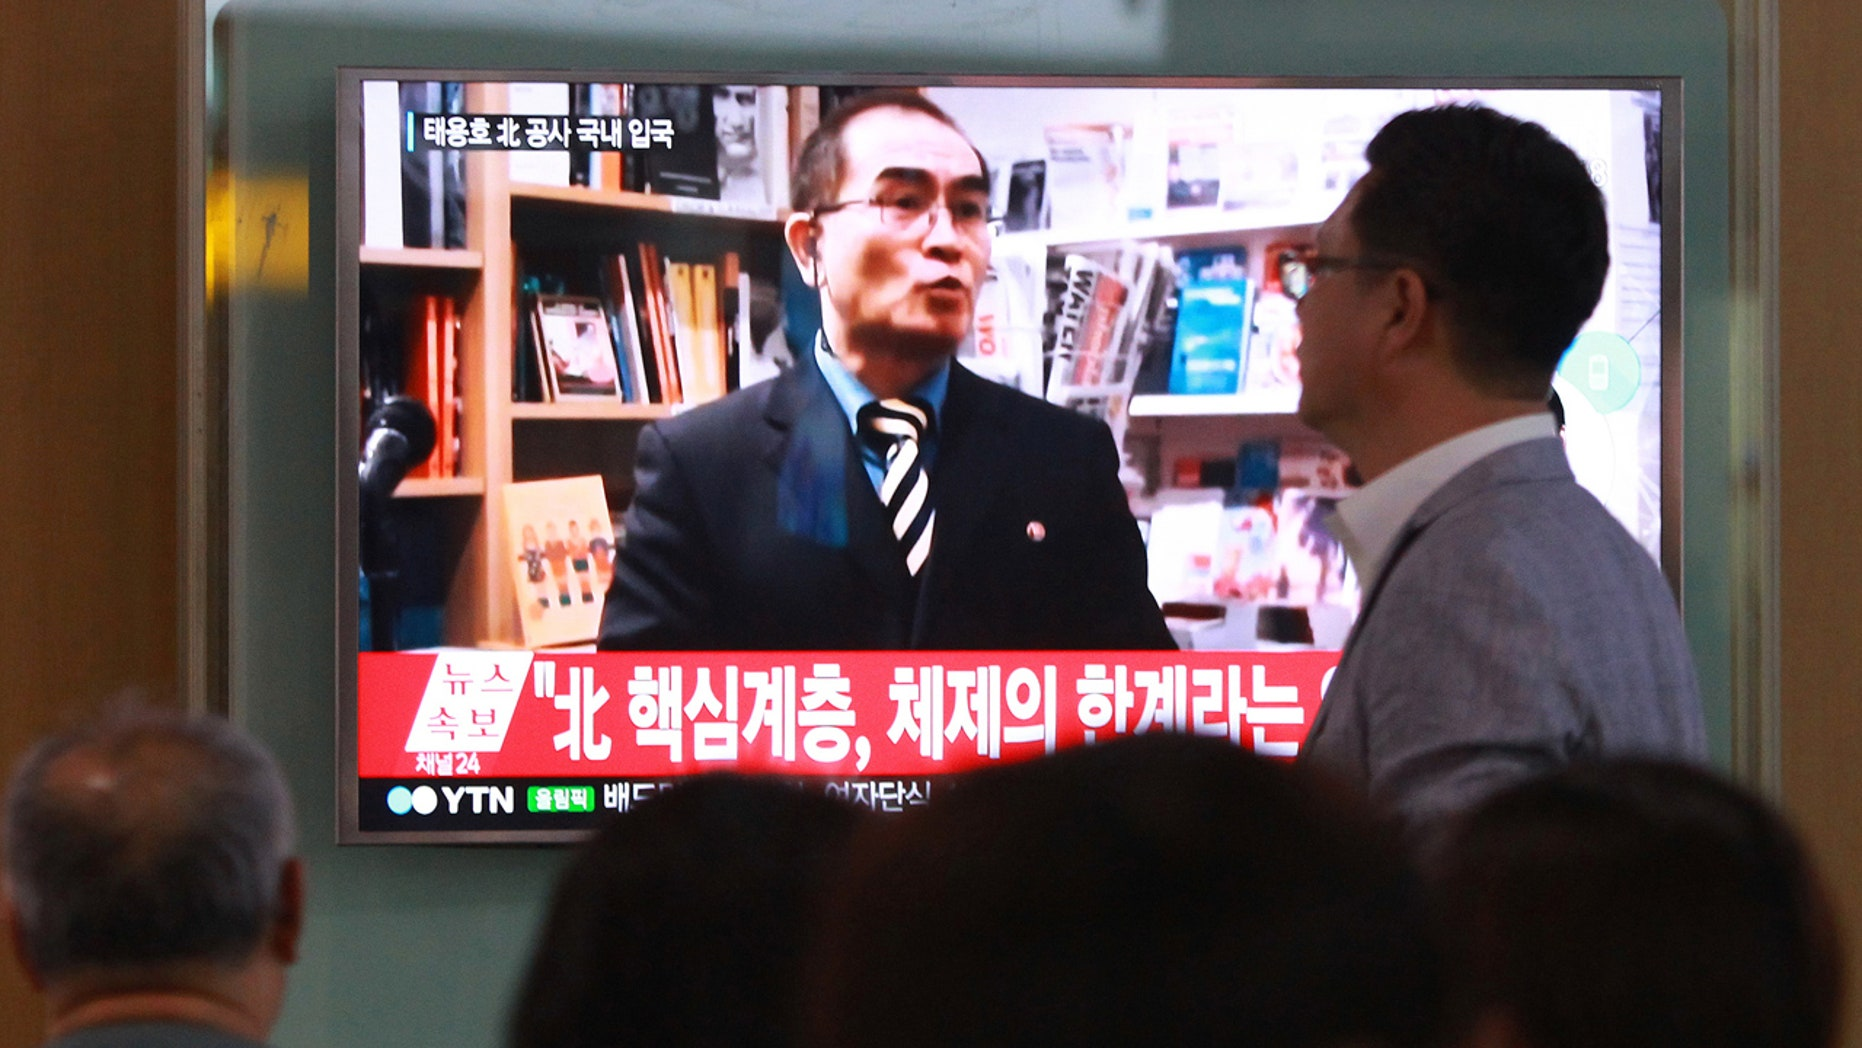 Aug. 17, 2016: People watch a TV news program showing a file image of Thae Yong Ho, a minister at the North Korean Embassy in London, at Seoul Railway Station in Seoul, South Korea.